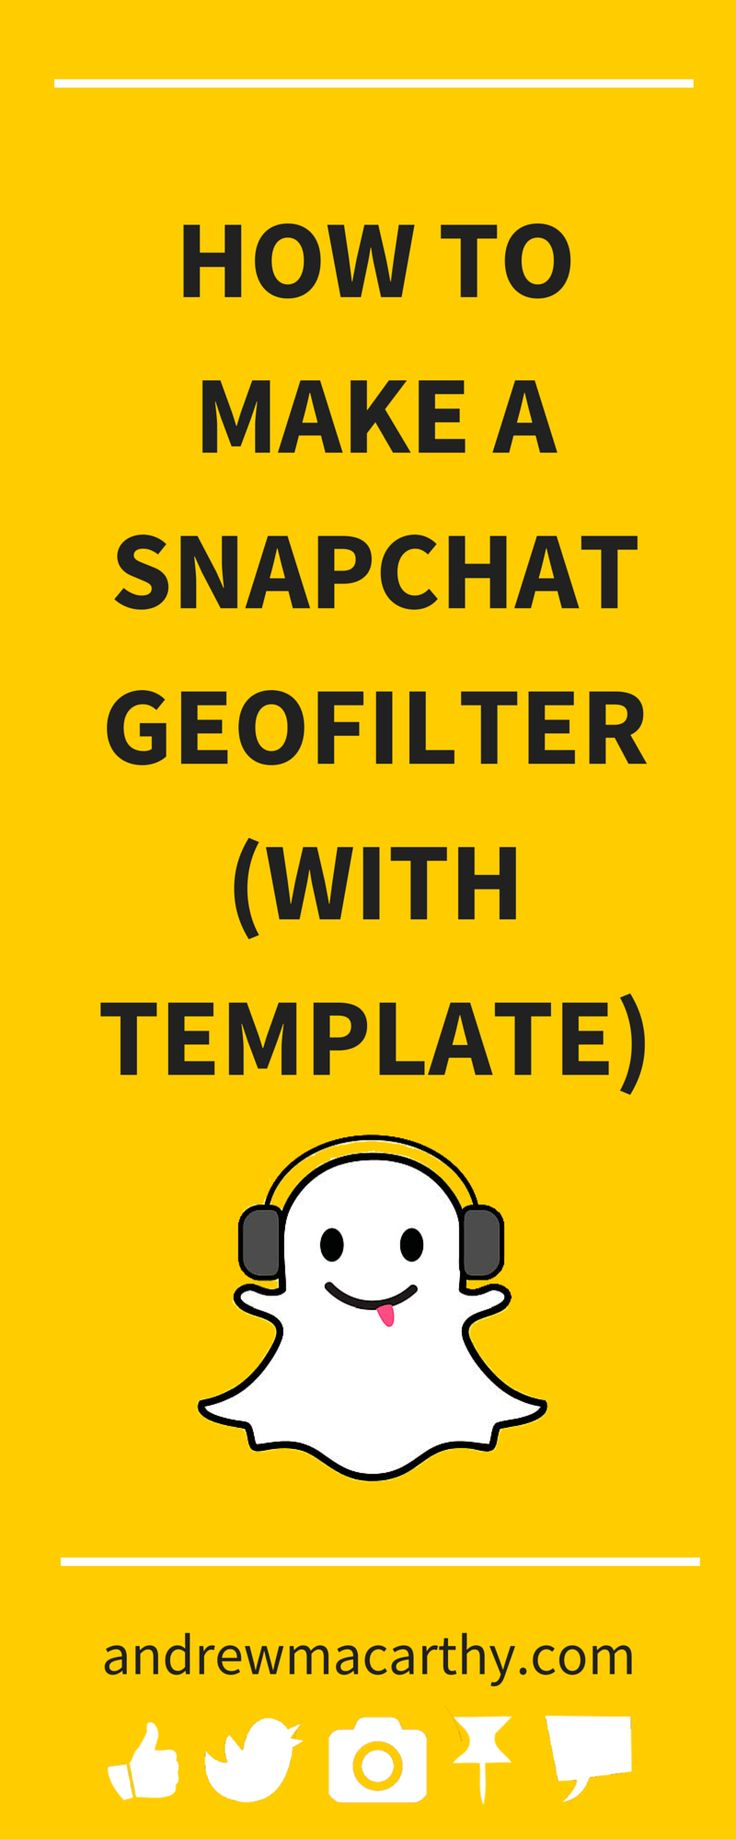 17 best images about randolph fun days on pinterest for Free snapchat geofilter template